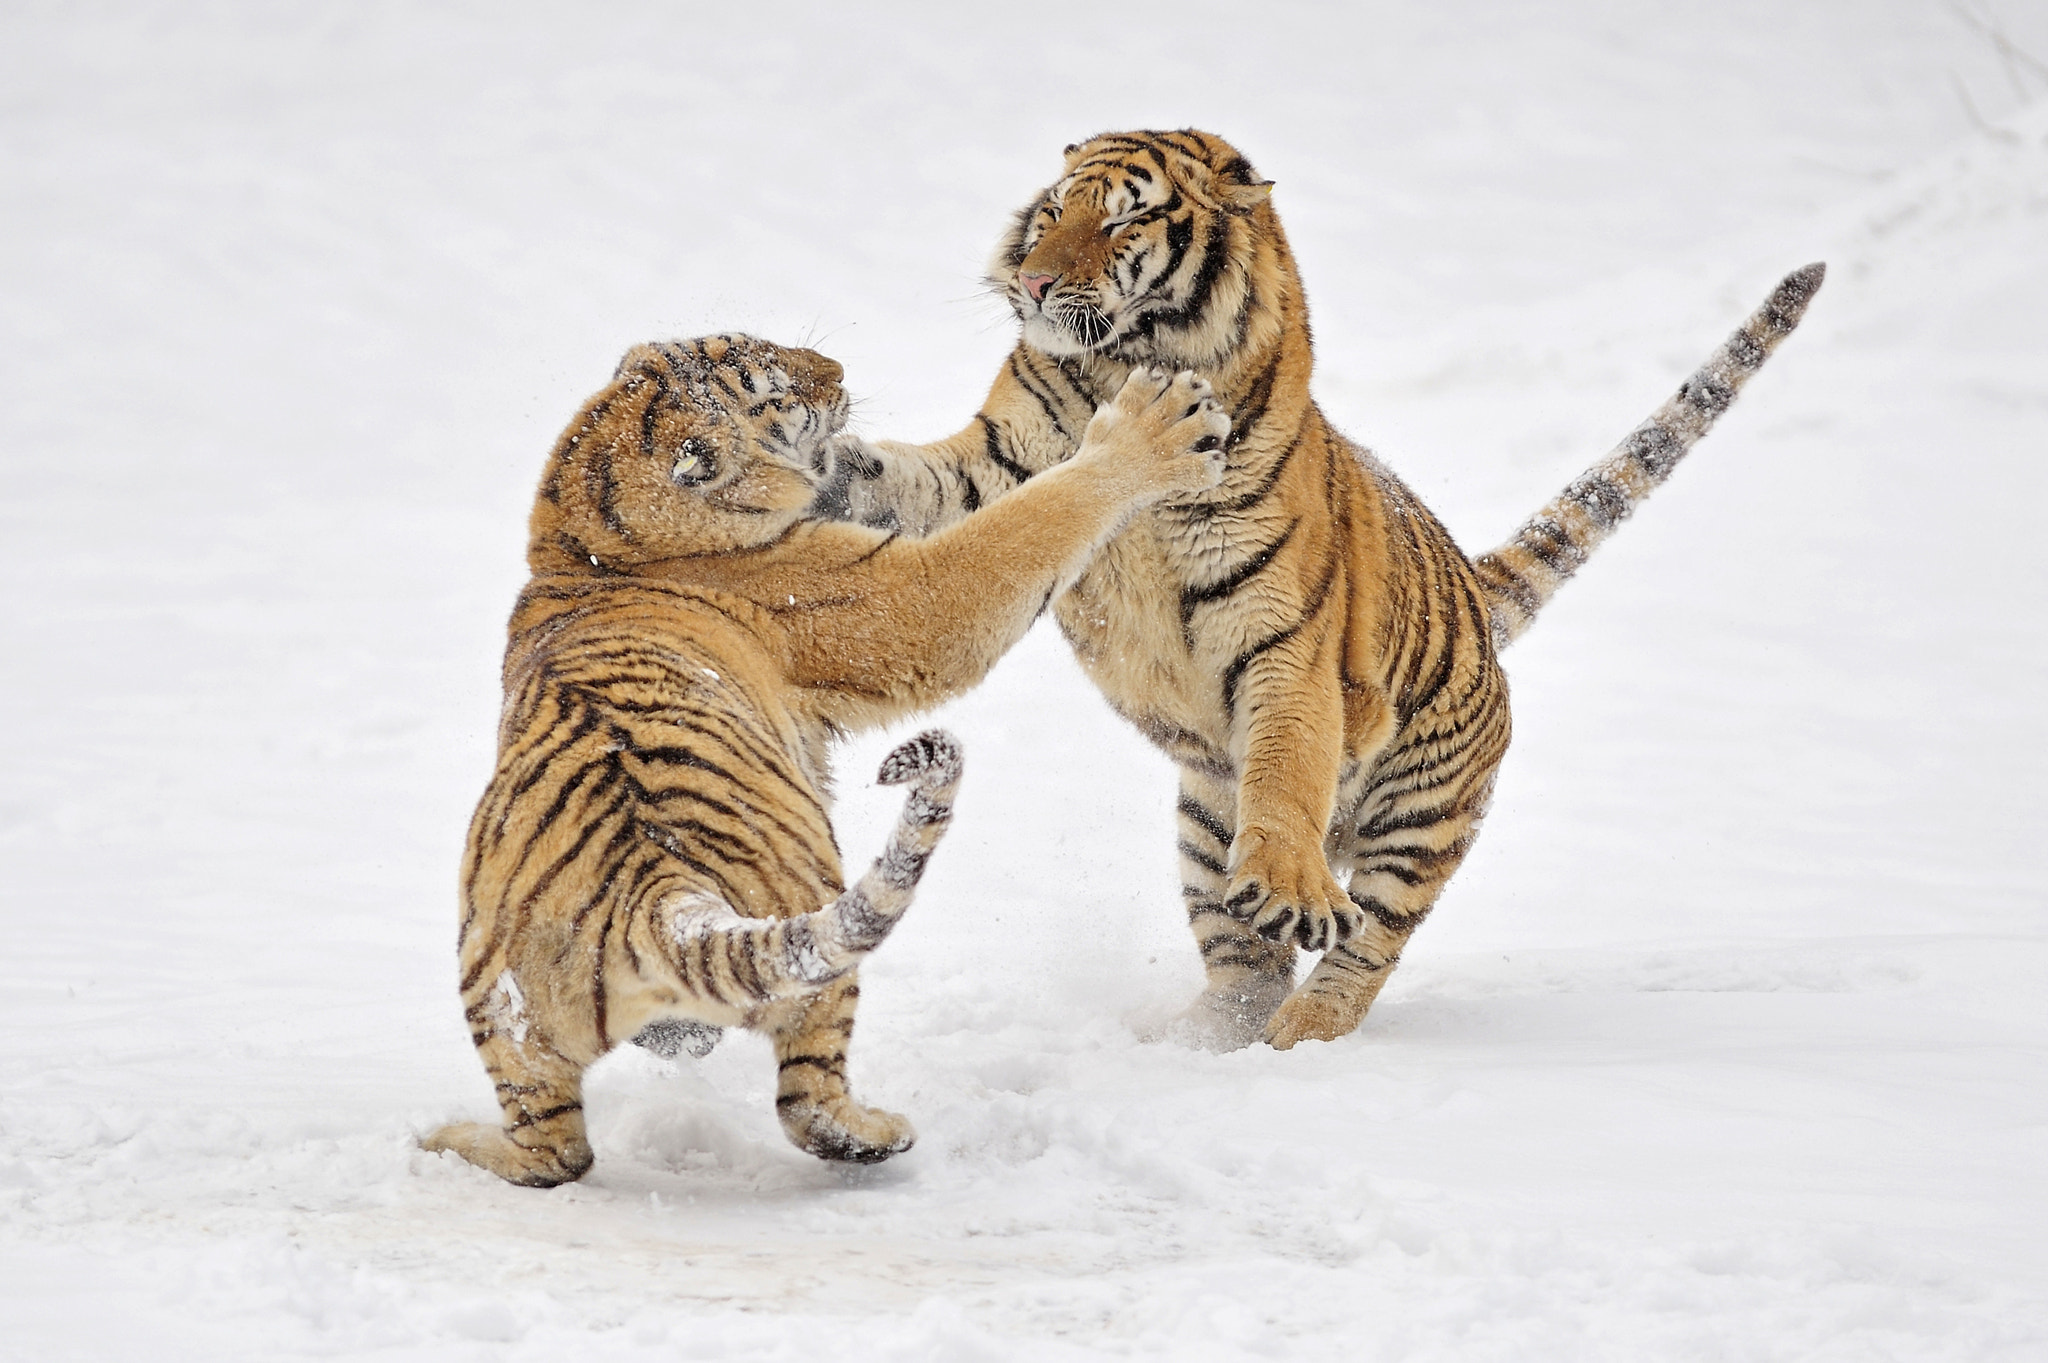 Photograph Tiger's games by Alexey Tishchenko on 500px